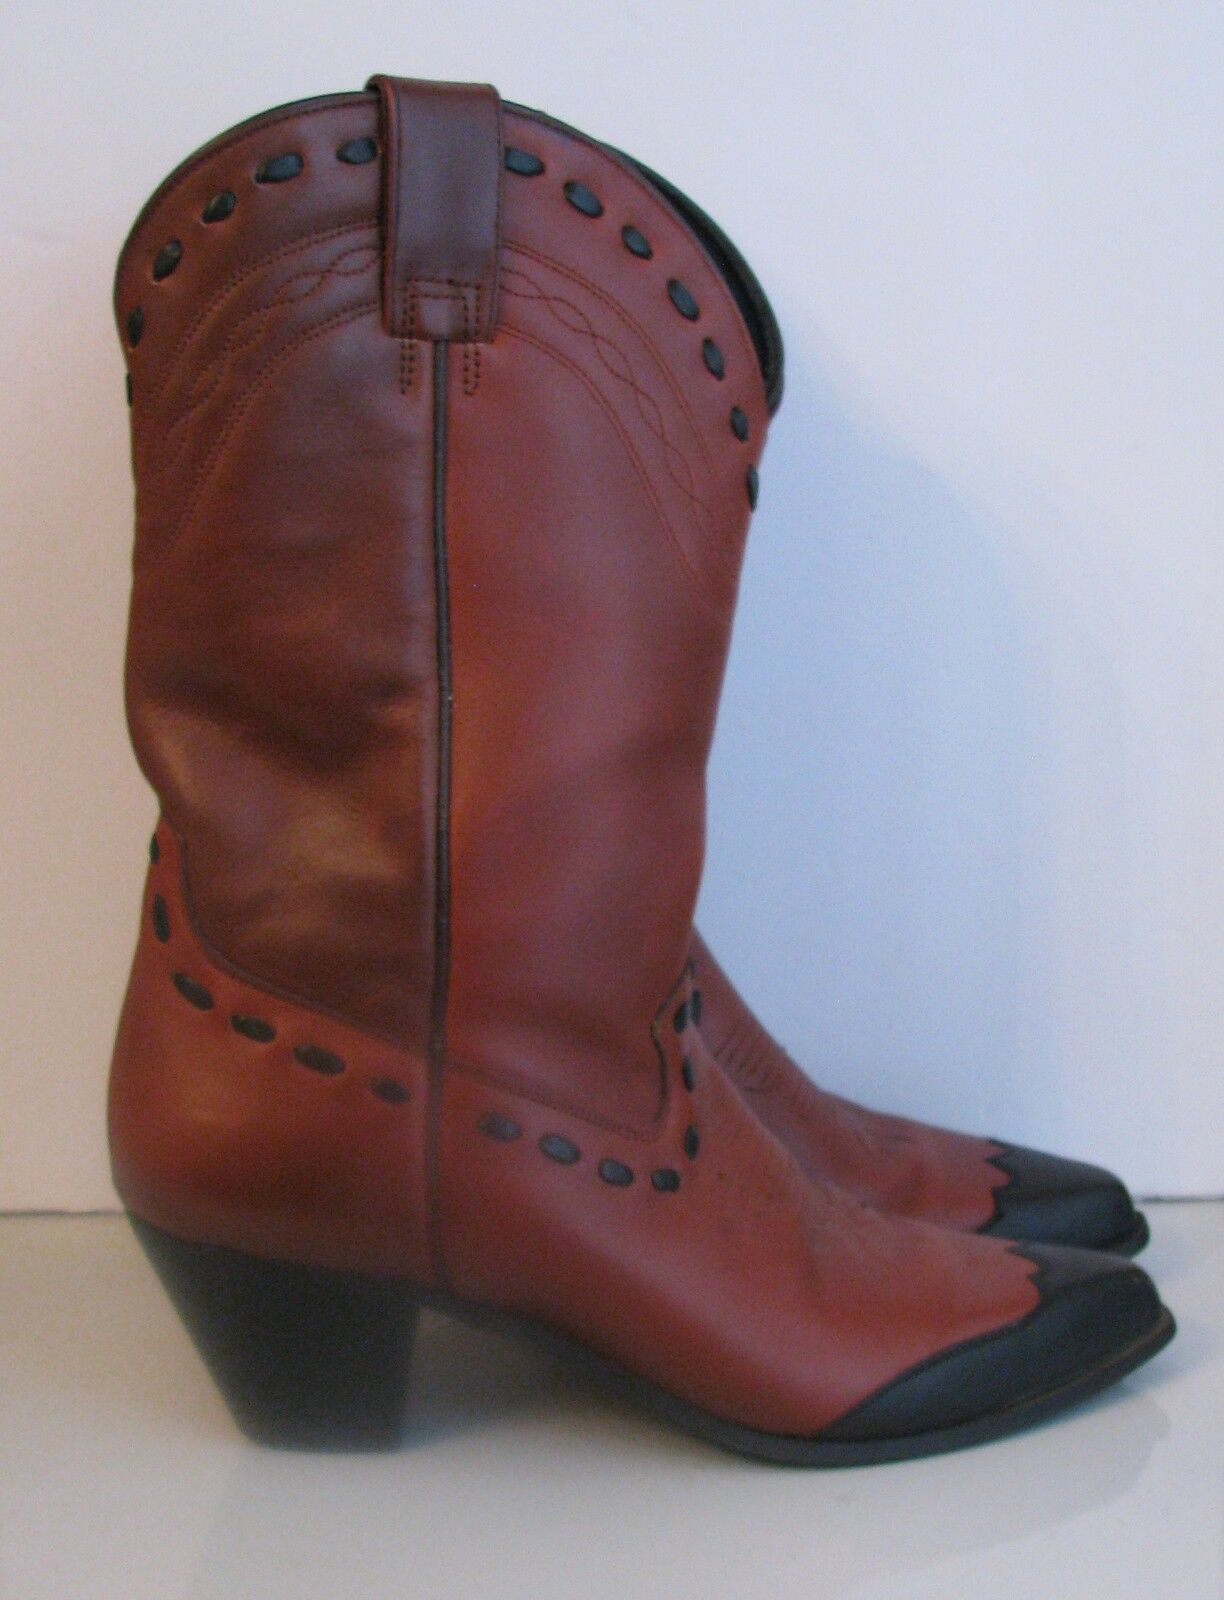 00a3012e079 Dingo Western Cowgirl Boots Woman's 7 M and 38 similar items